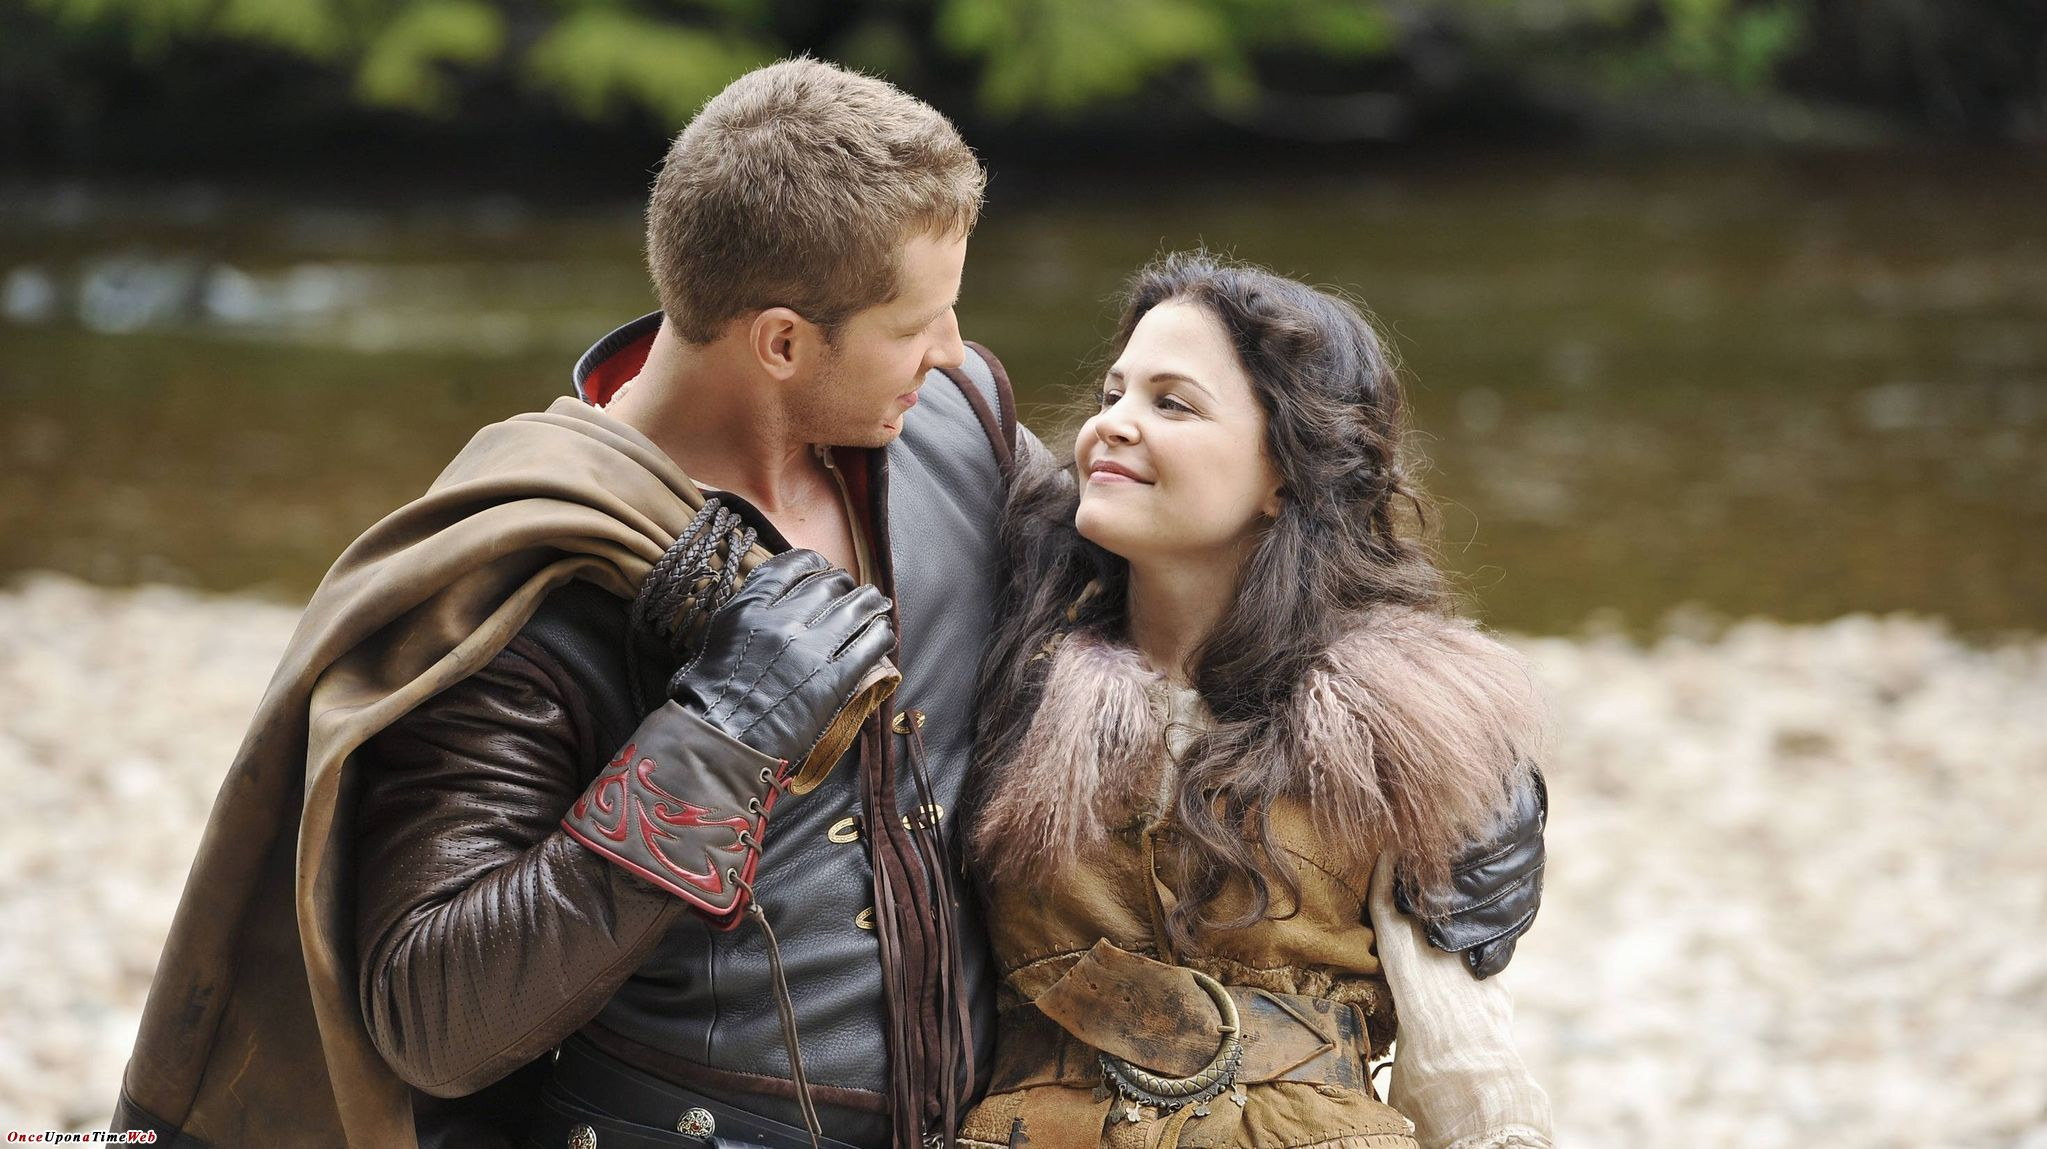 Once Upon a Time s Ginnifer Goodwin and Josh Dallas Welcome Baby No. 2